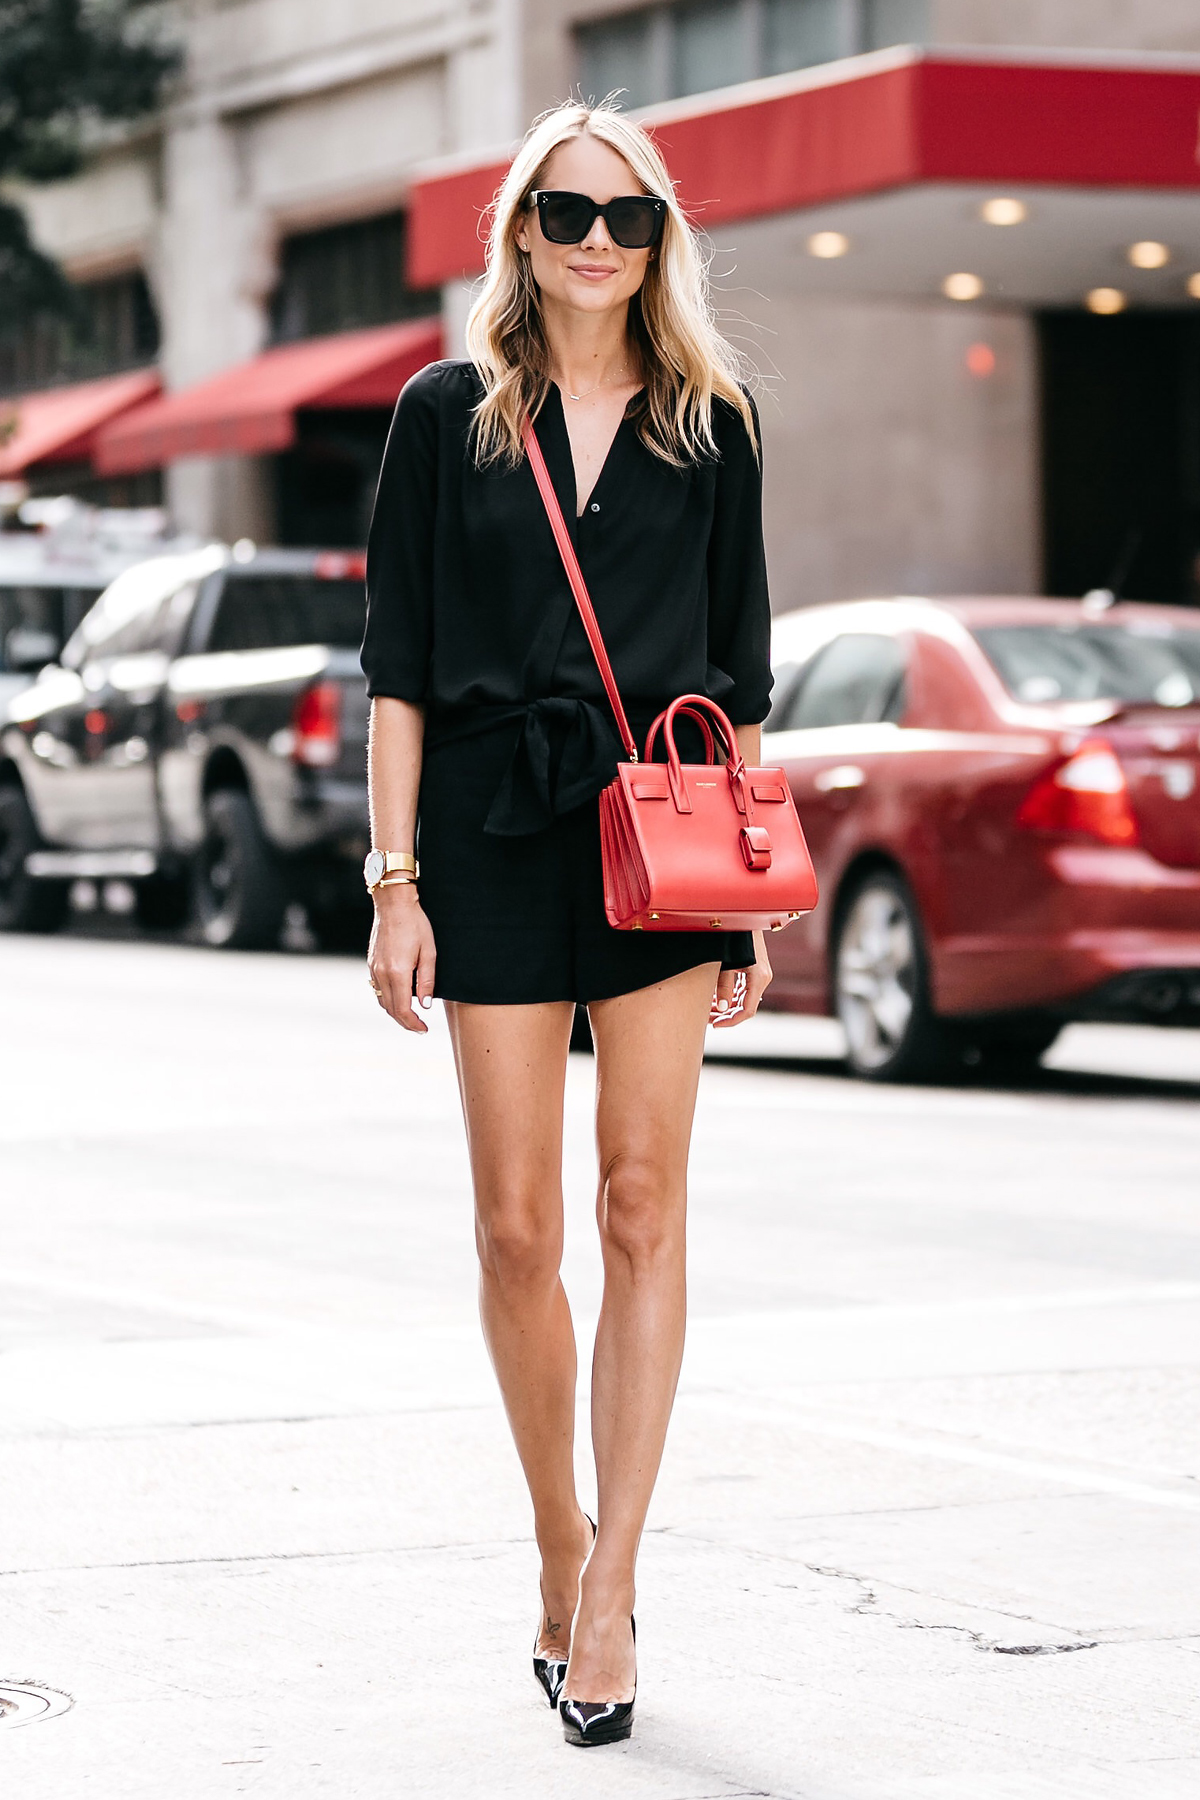 Blonde Woman Wearing Nordstrom Black Blouse Nordstrom Black Tie Front Shorts YSL Sac De Jour Nano Red Christian Louboutin Black Pumps Street Style Outfit Dallas Blogger Fashion Blogger